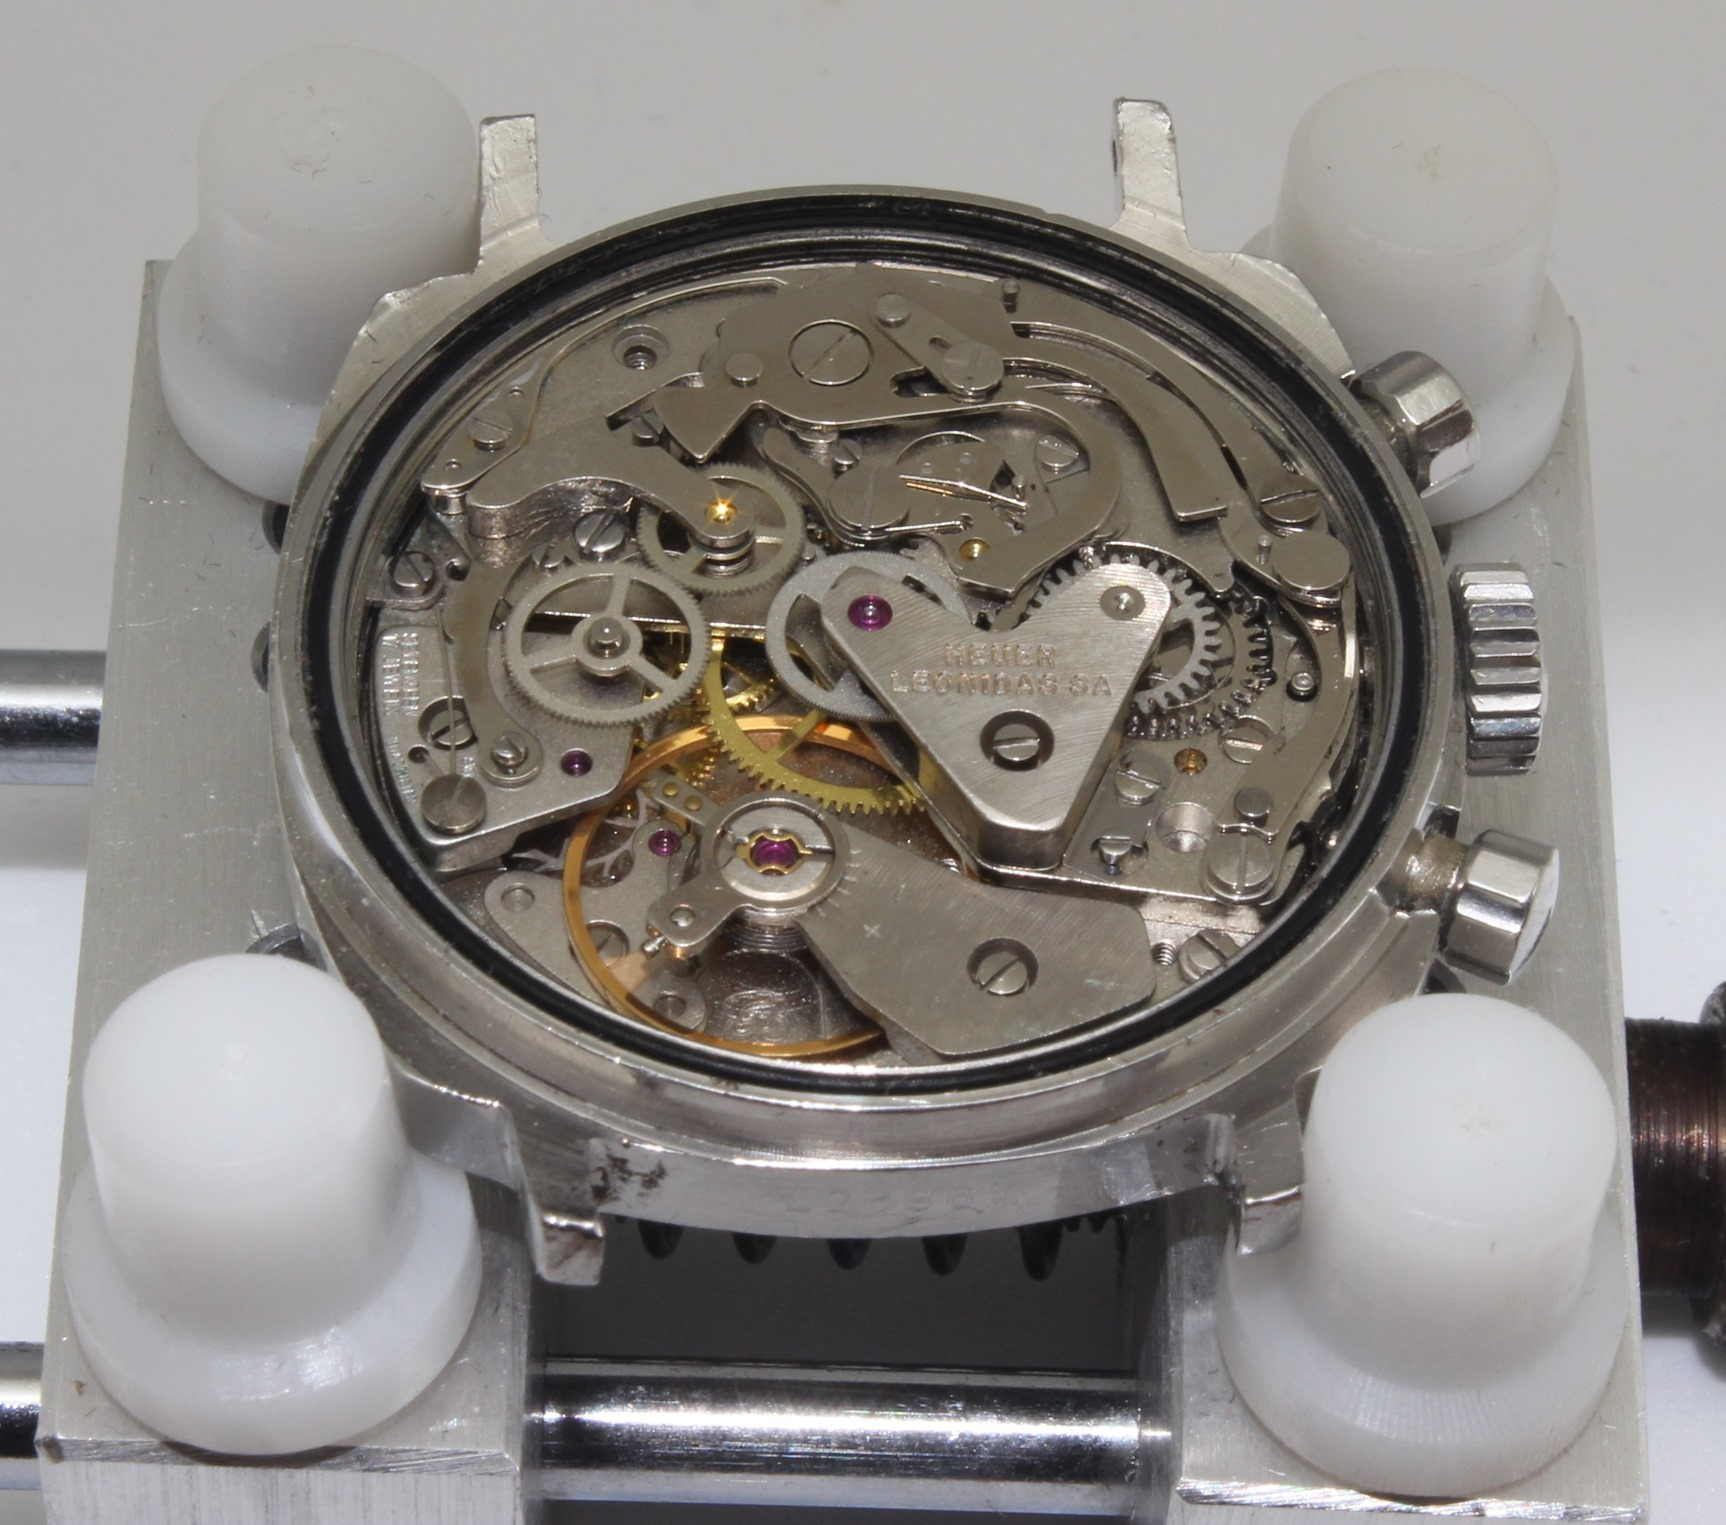 Valjoux 7733 movement from Heuer Camaro 73343N  -- Vintage Watch Advisors